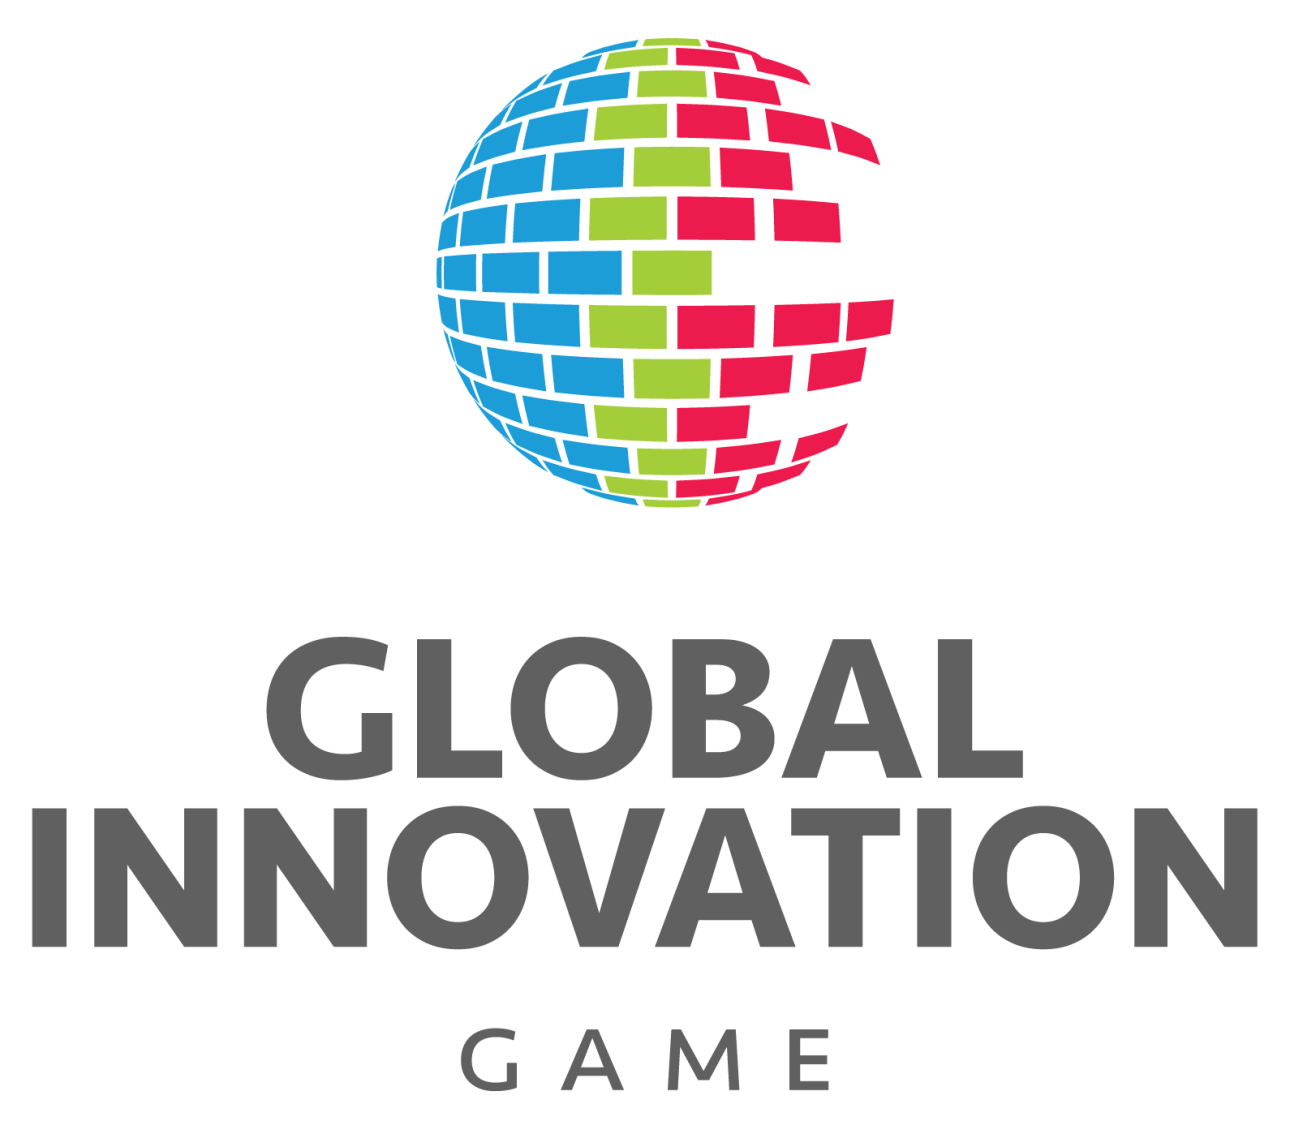 Global Innovation Game Logo